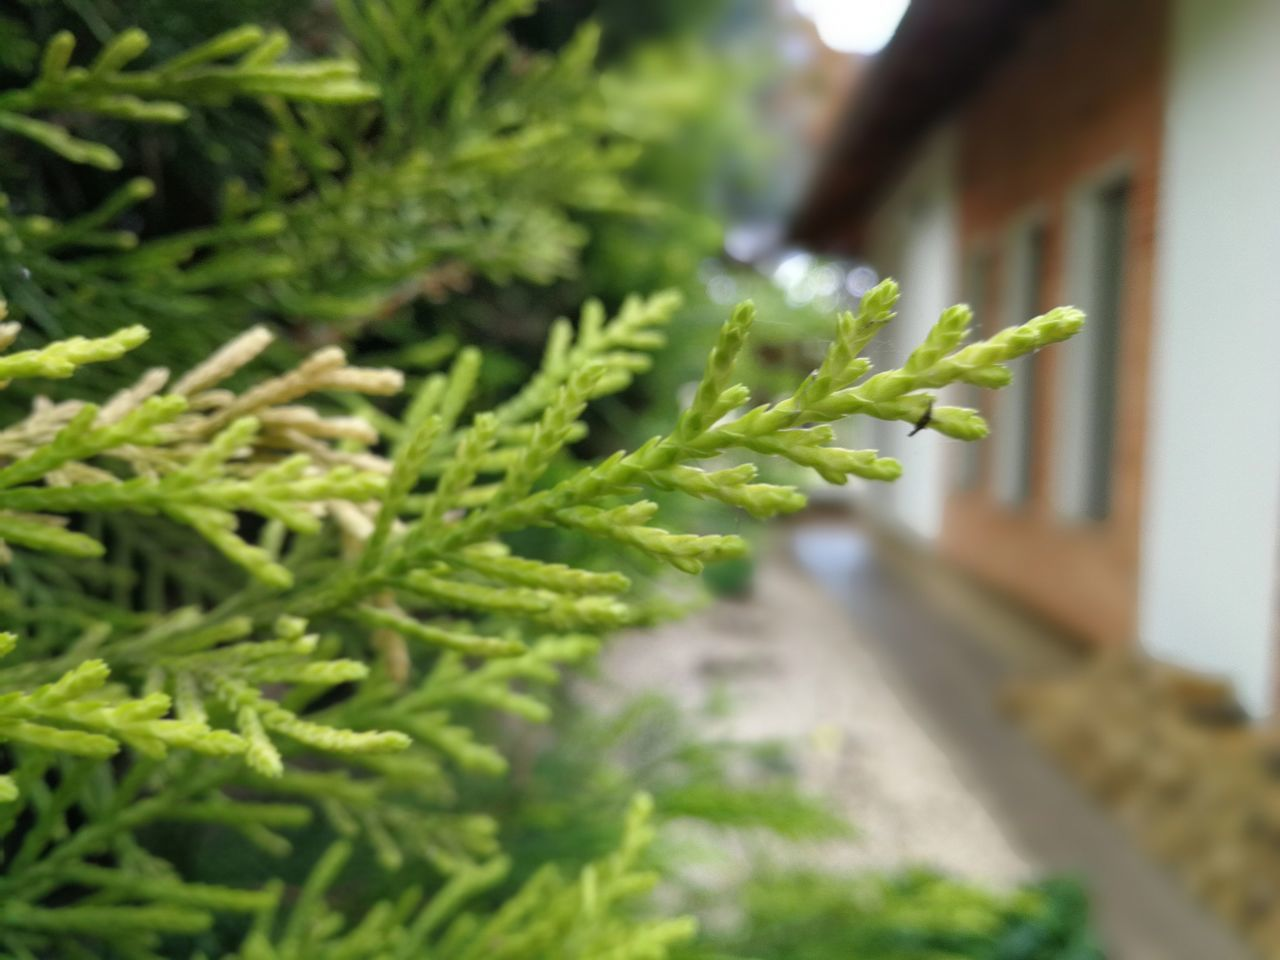 green color, focus on foreground, growth, close-up, no people, plant, day, selective focus, outdoors, nature, freshness, leaf